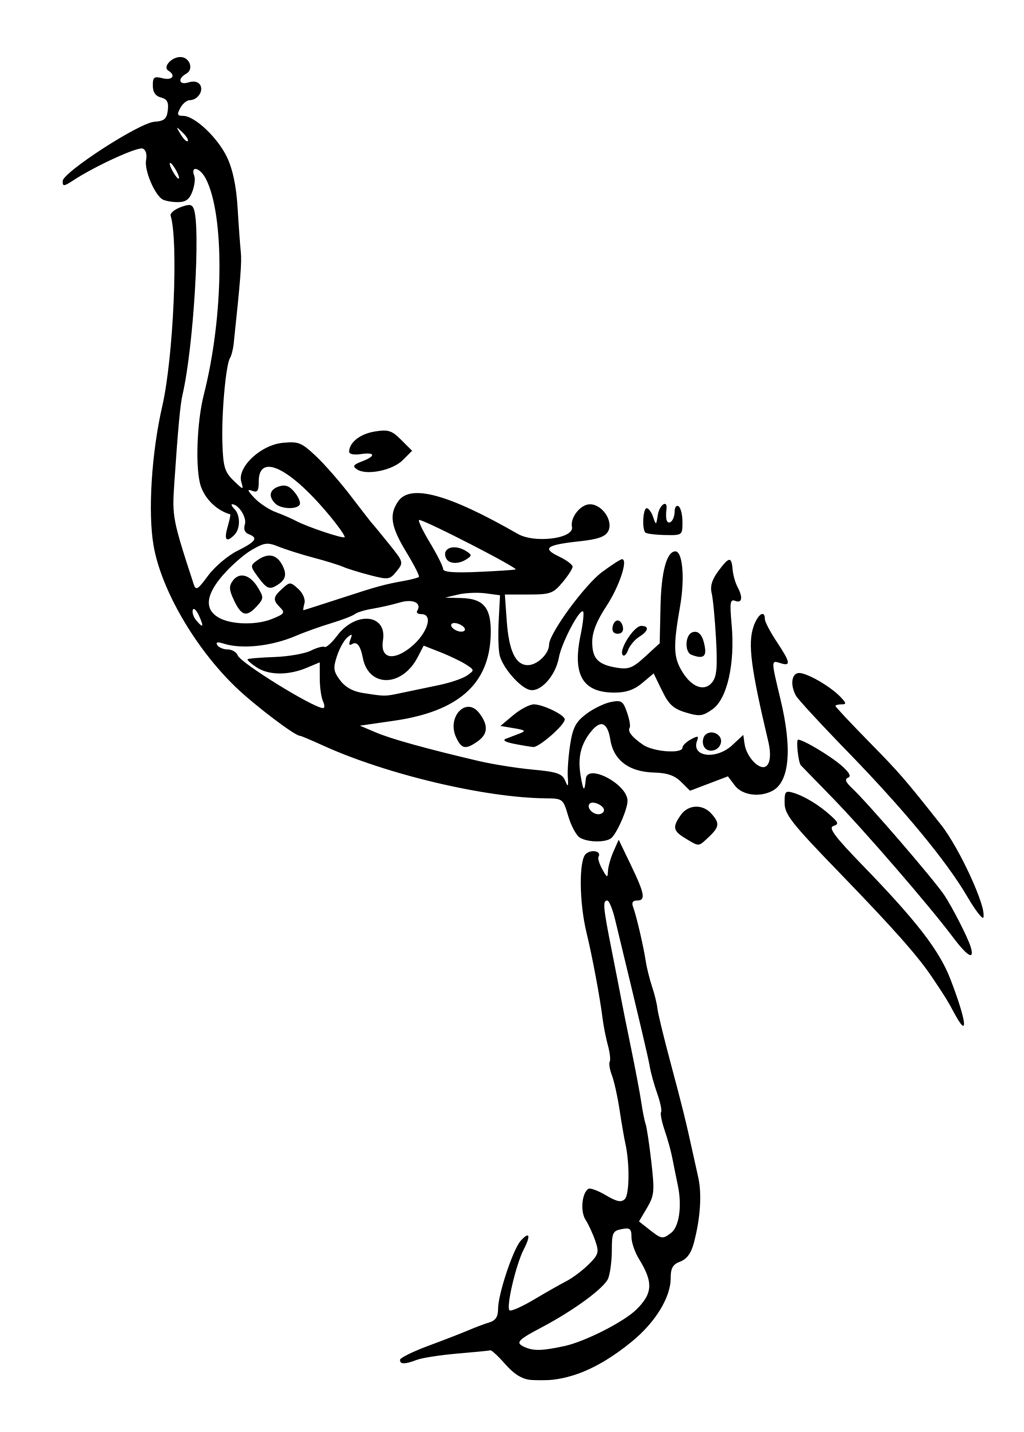 Example of zoological calligraphy. In this case, the artist has interlocked Arabic lettering to form the likeness of a bird. Zoological calligraphy served as one way for Arabic artists to get around Islamic aniconism.